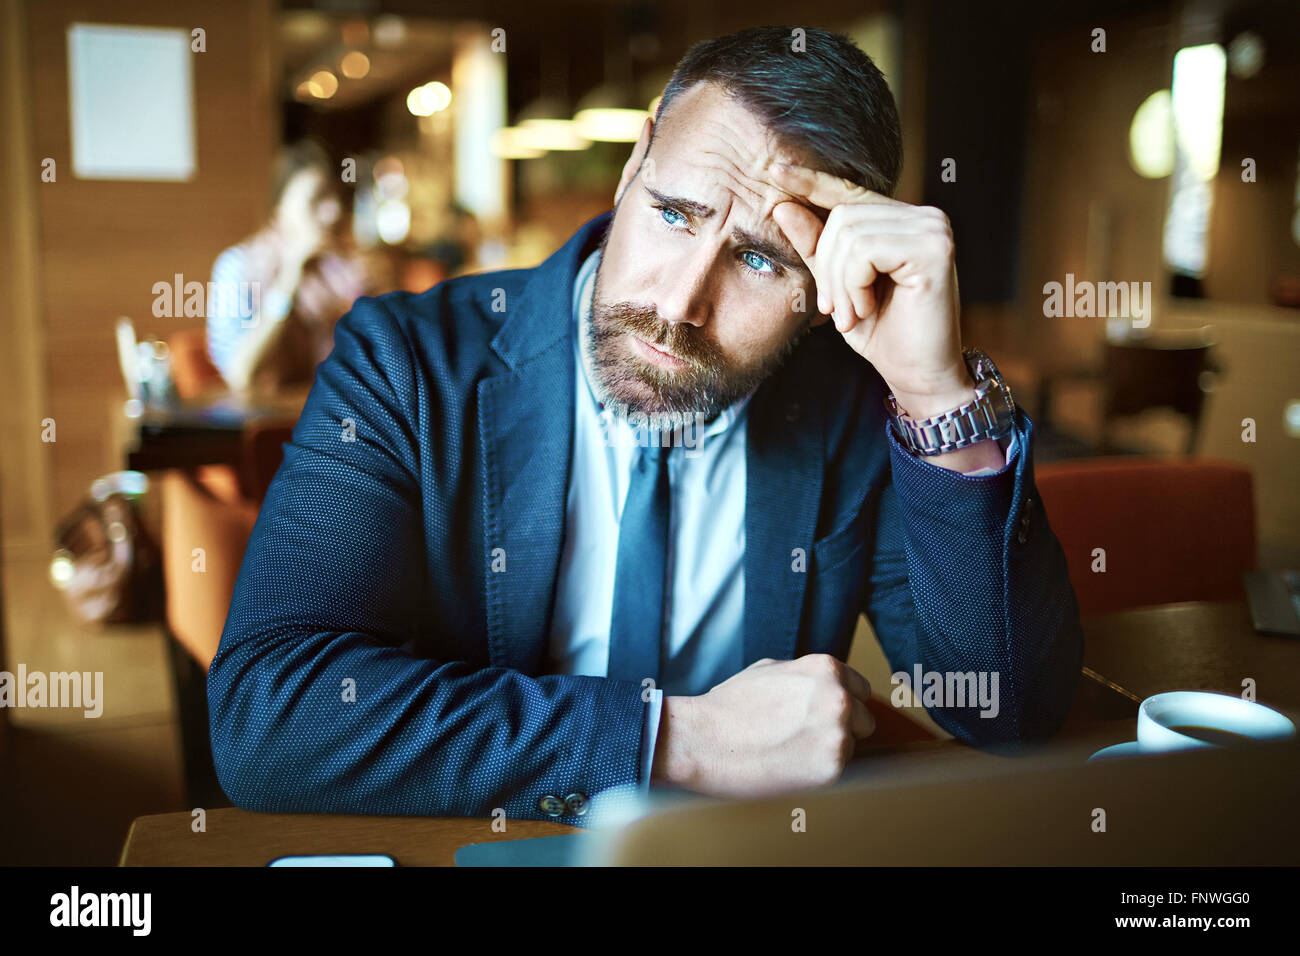 Pensive man touching his forehead and looking sideways - Stock Image